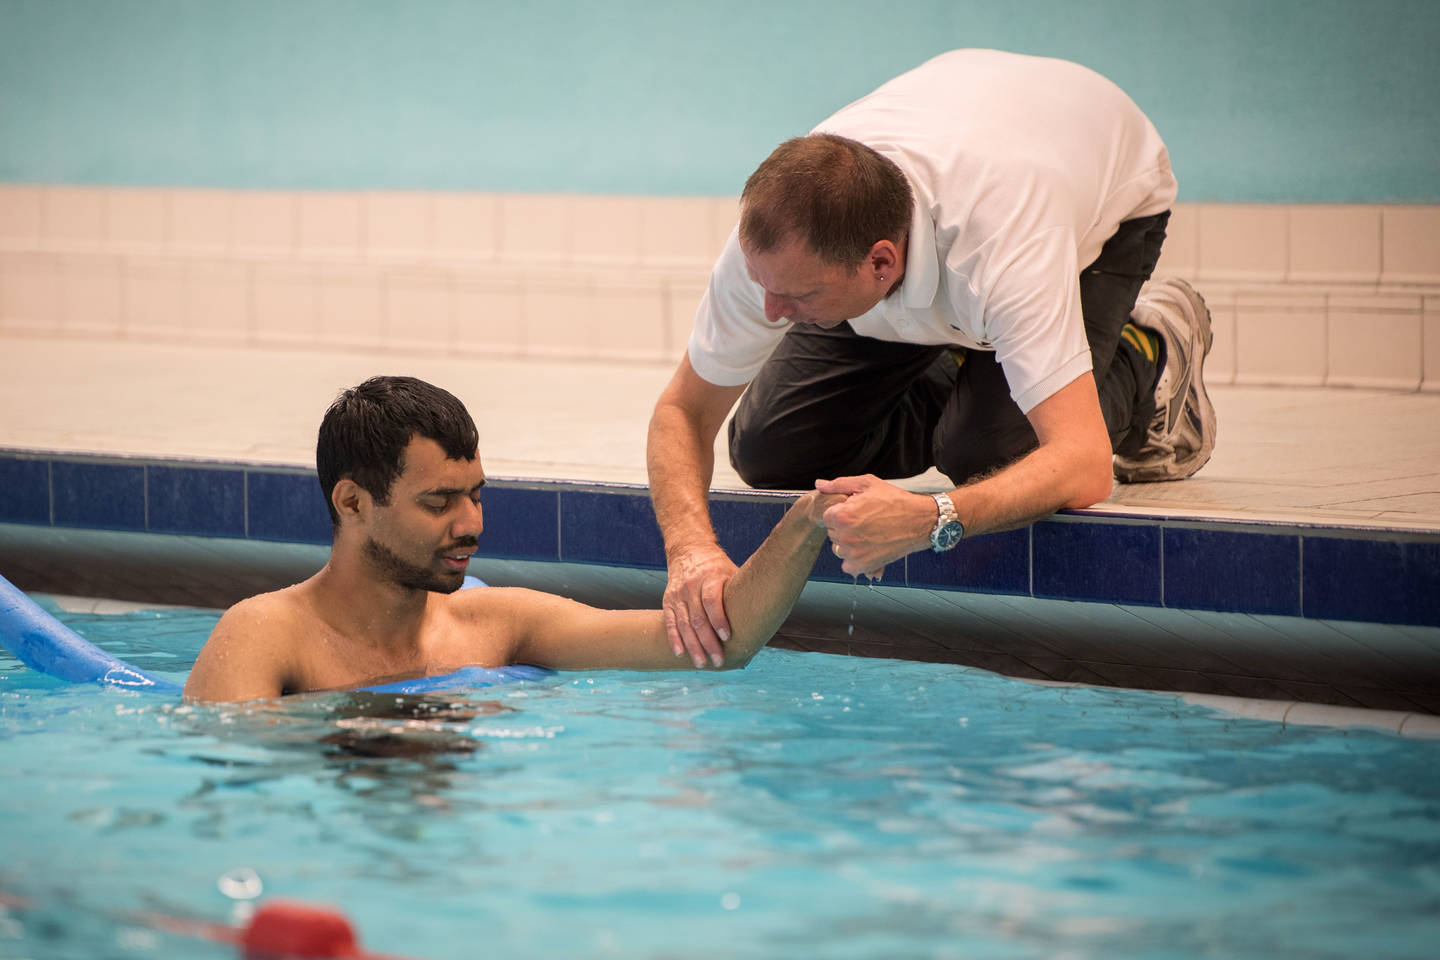 Swimming teacher supporting visually impaired man in swimming pool